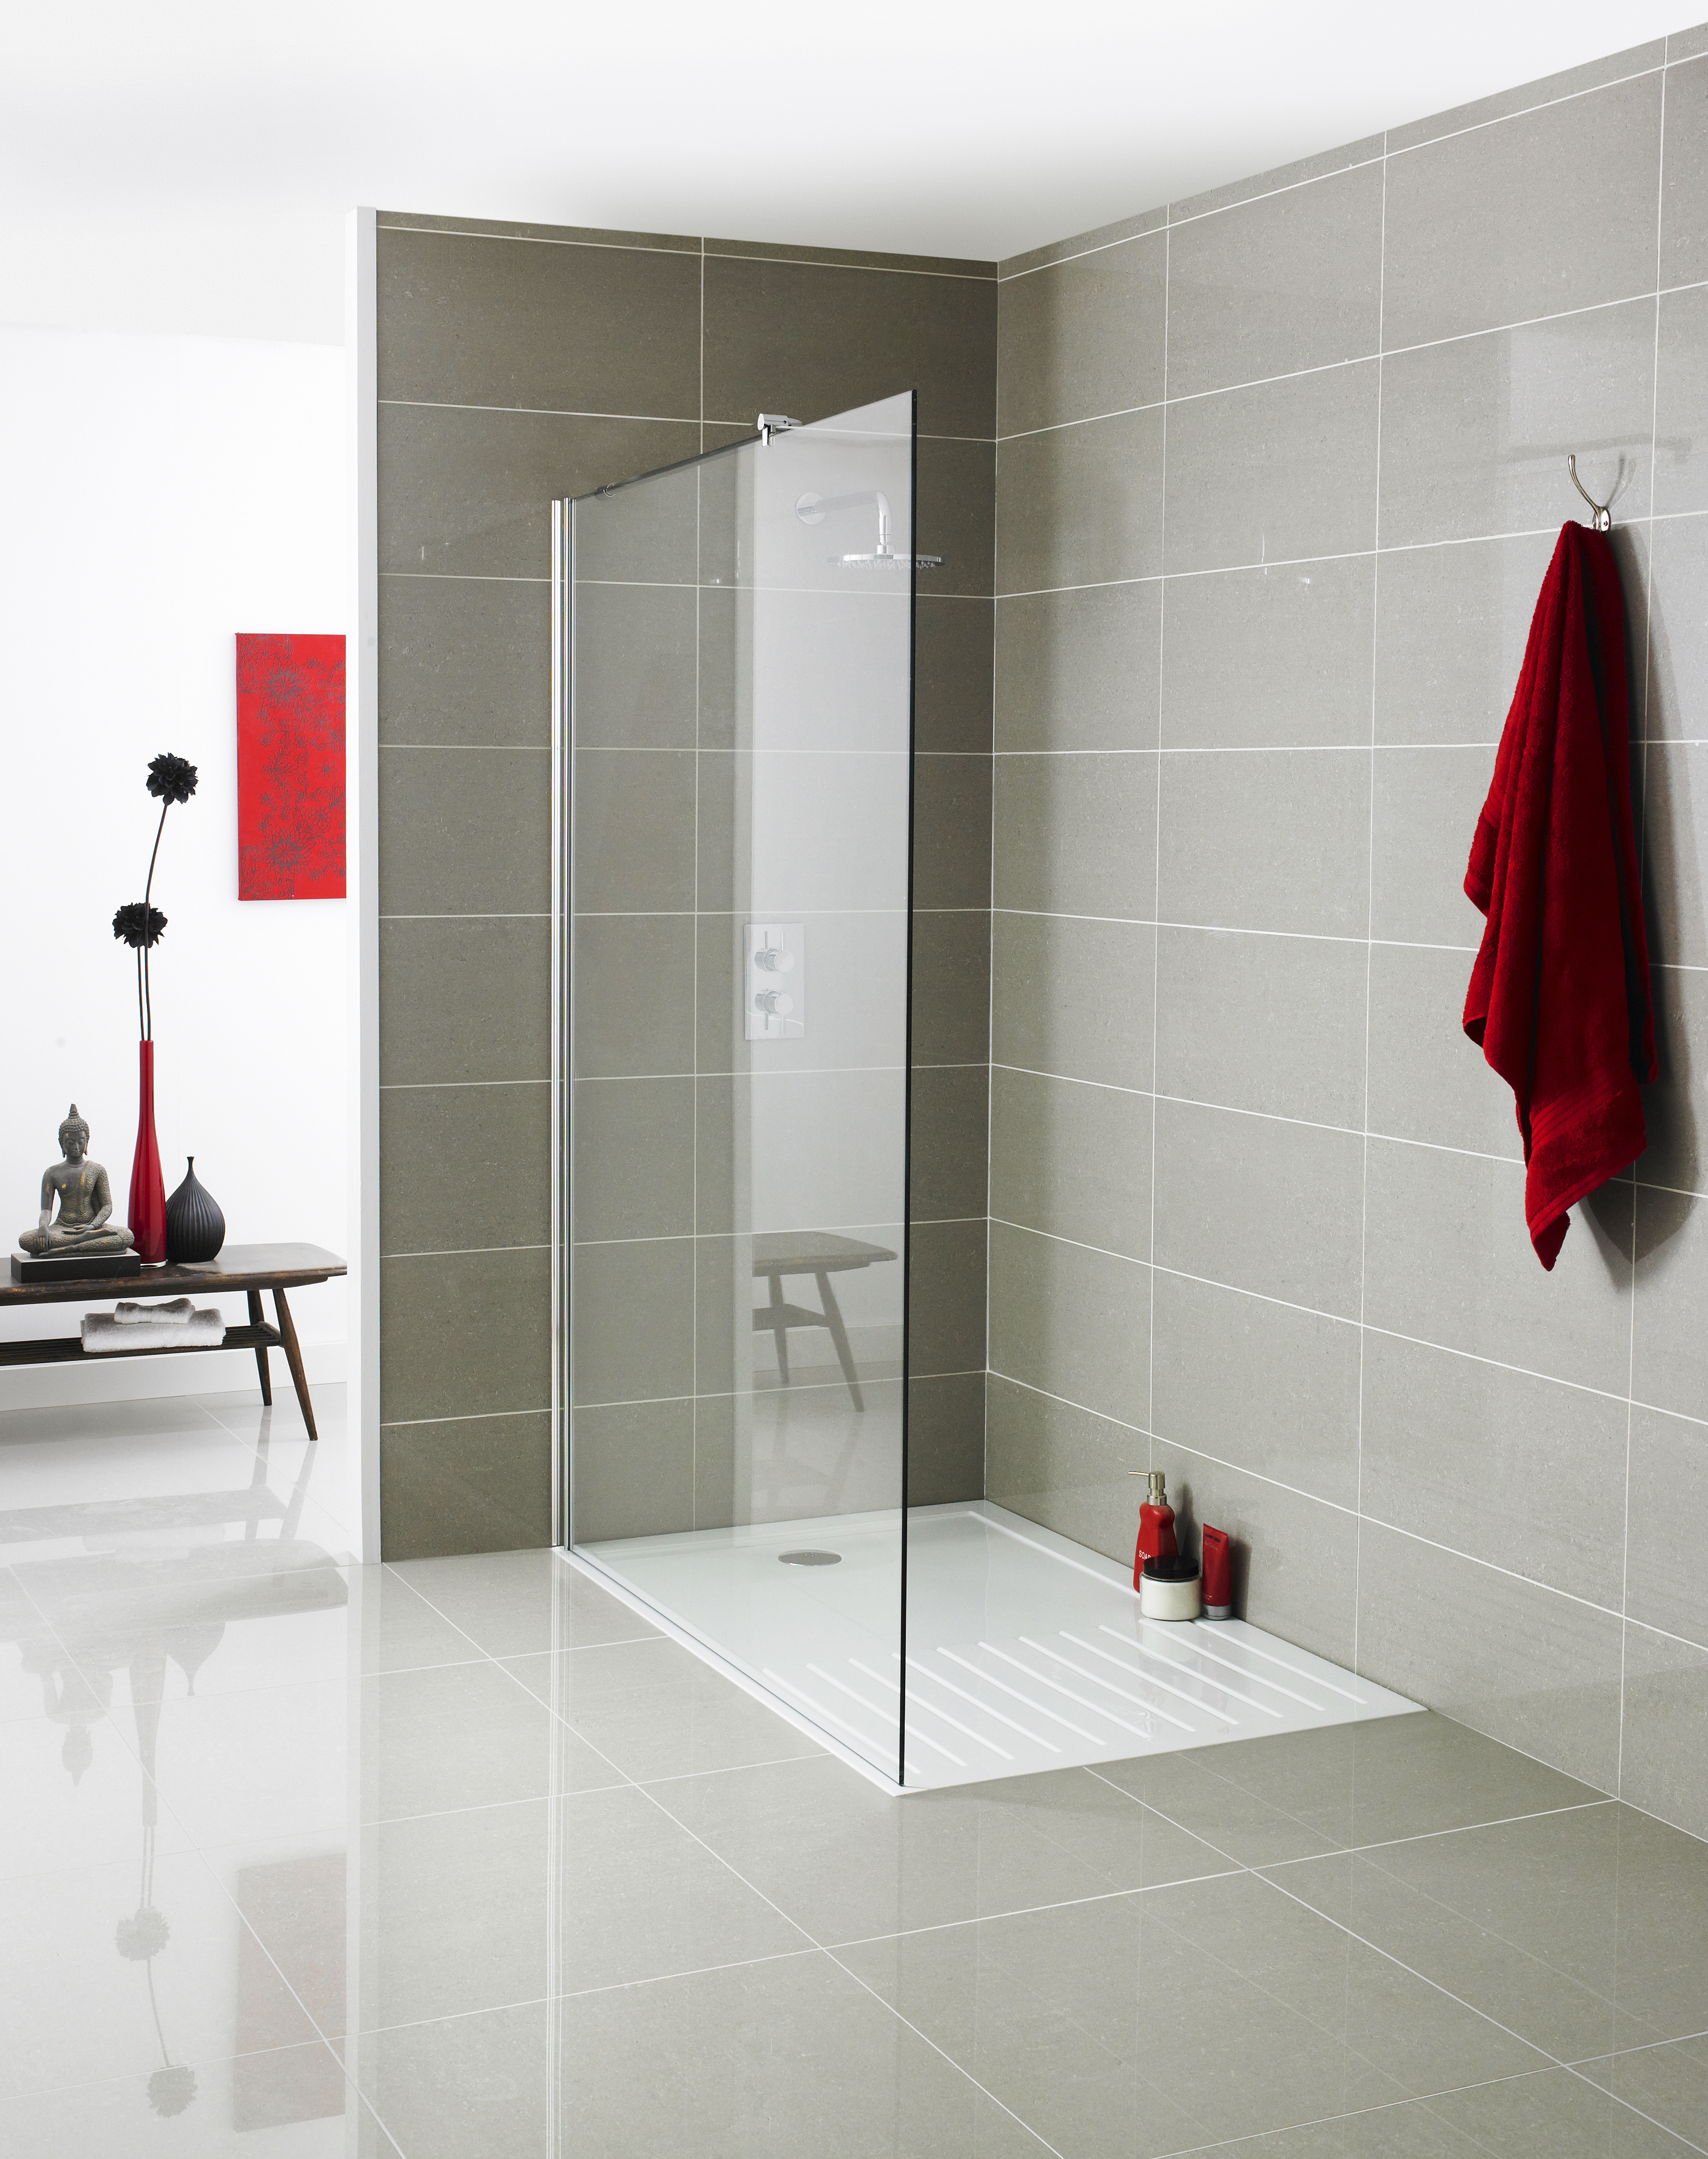 What is a Wet Room and why do I need one?